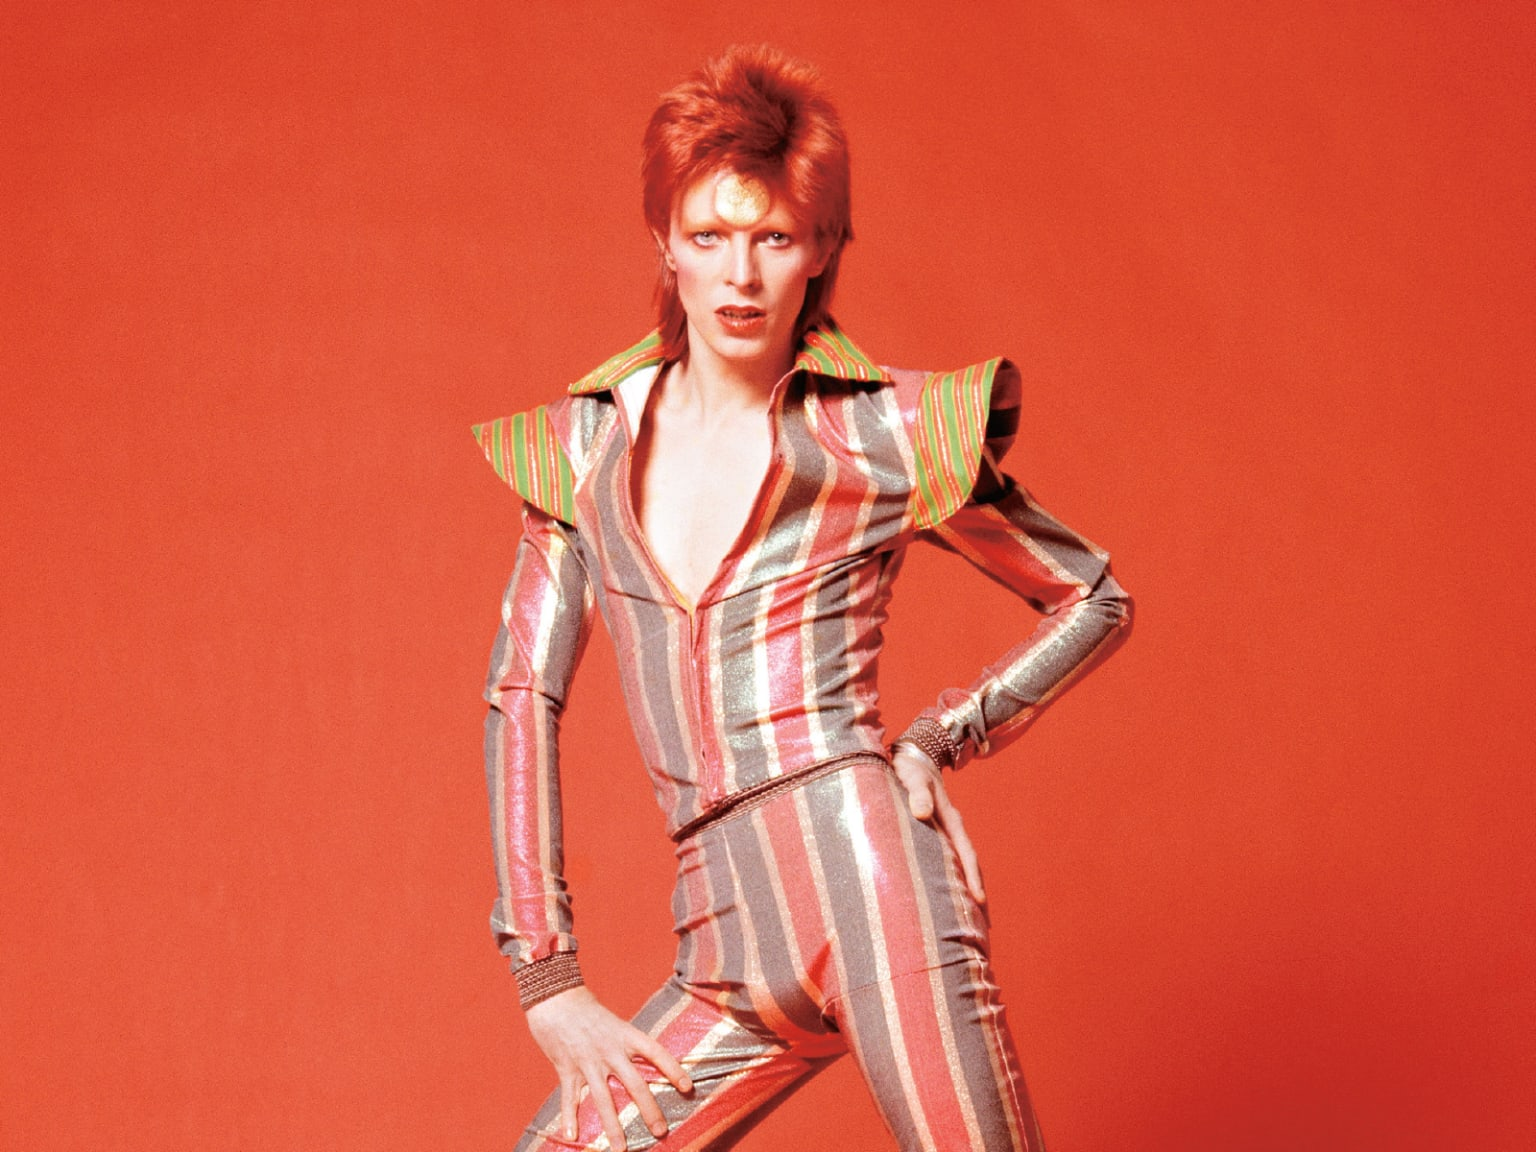 Spotify David Bowie is Here